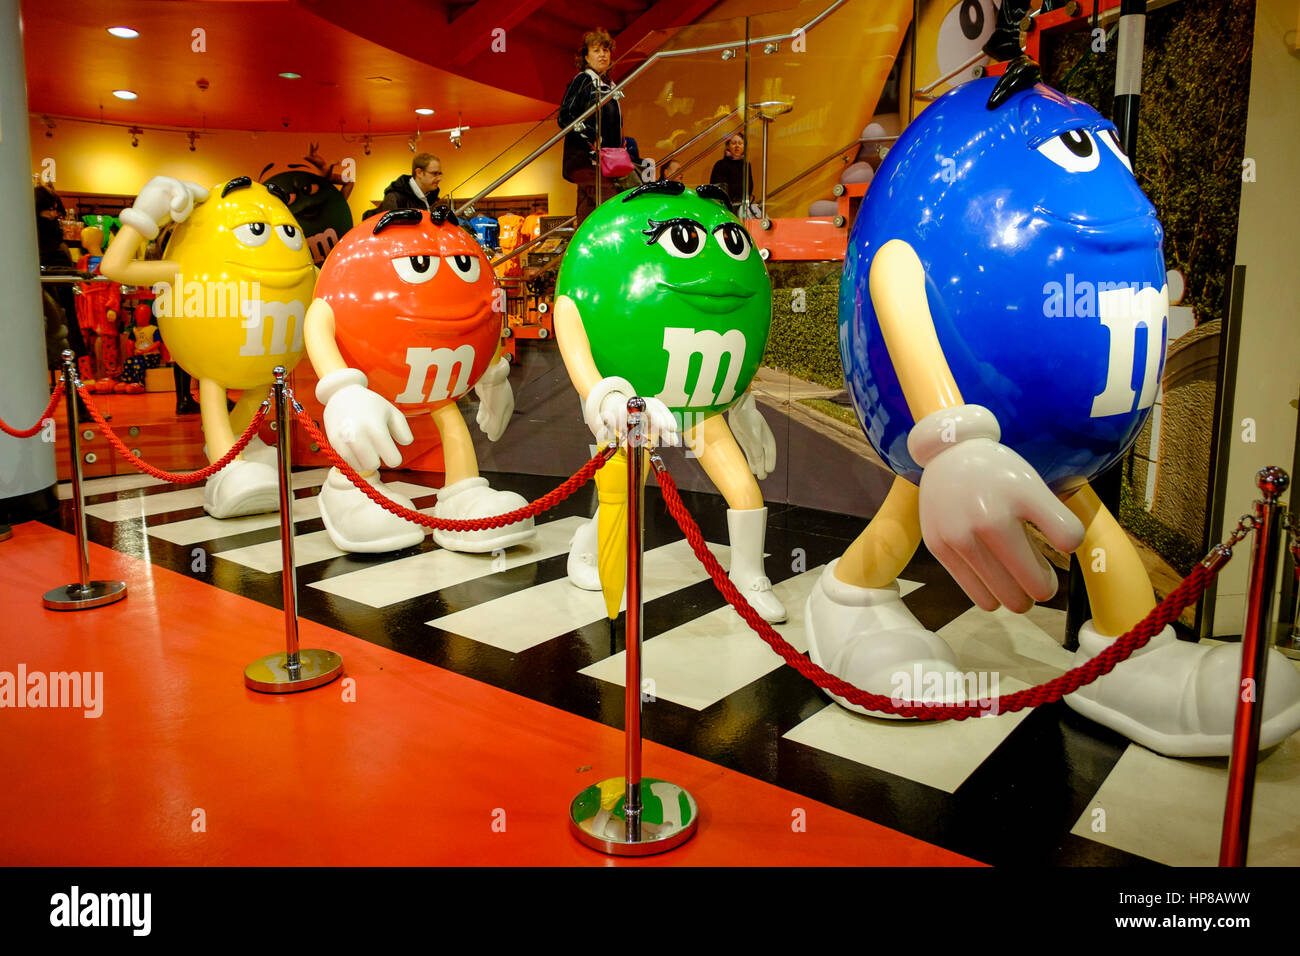 M&M World, Leicester Square, London, UK - Stock Image